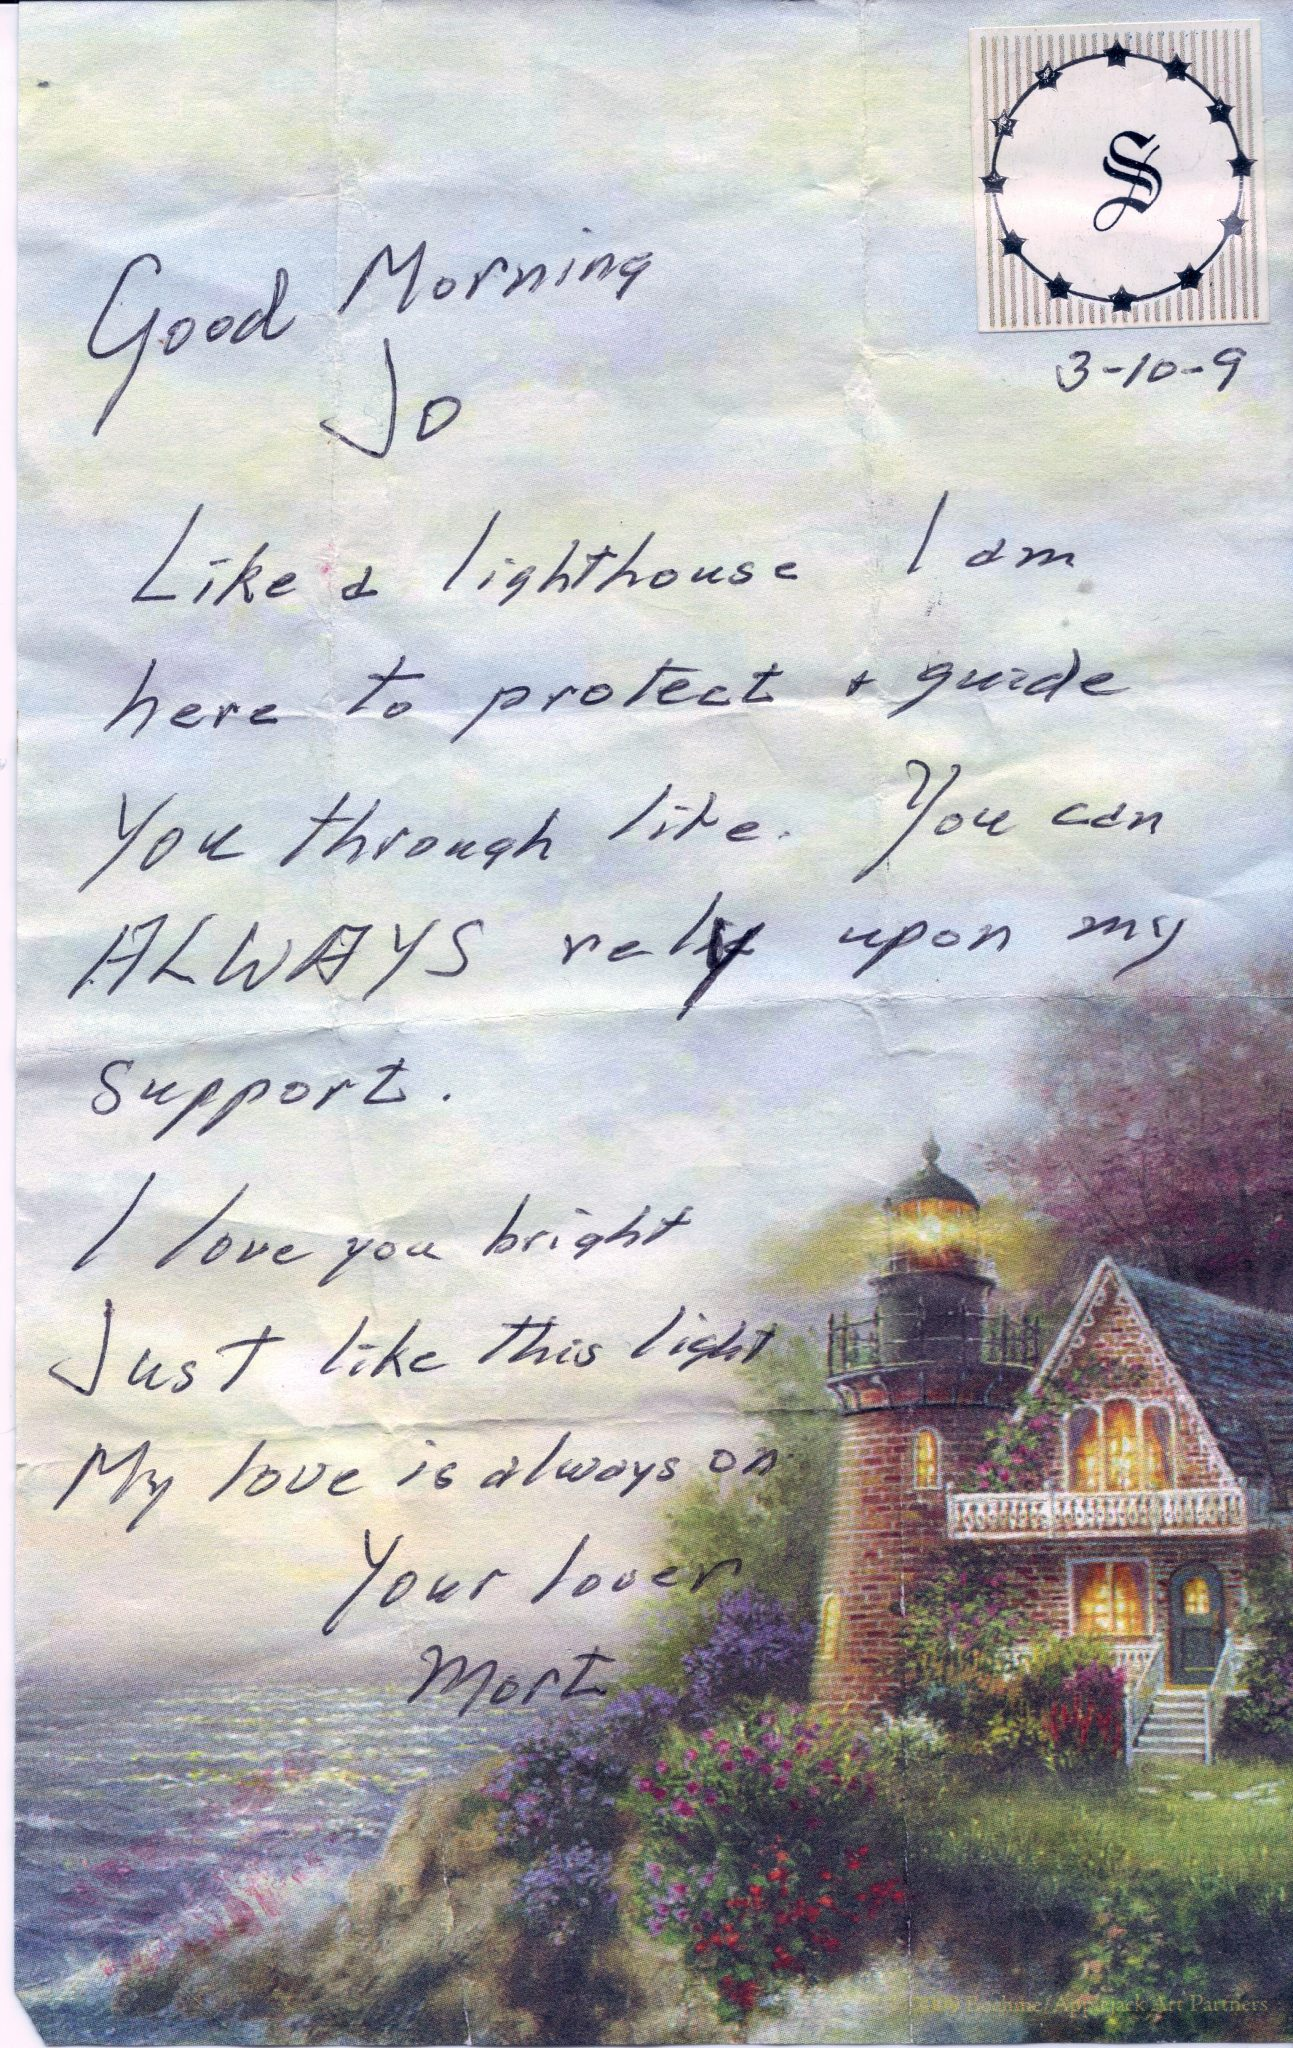 A Letter to Joanne from Mort 3/10/2009